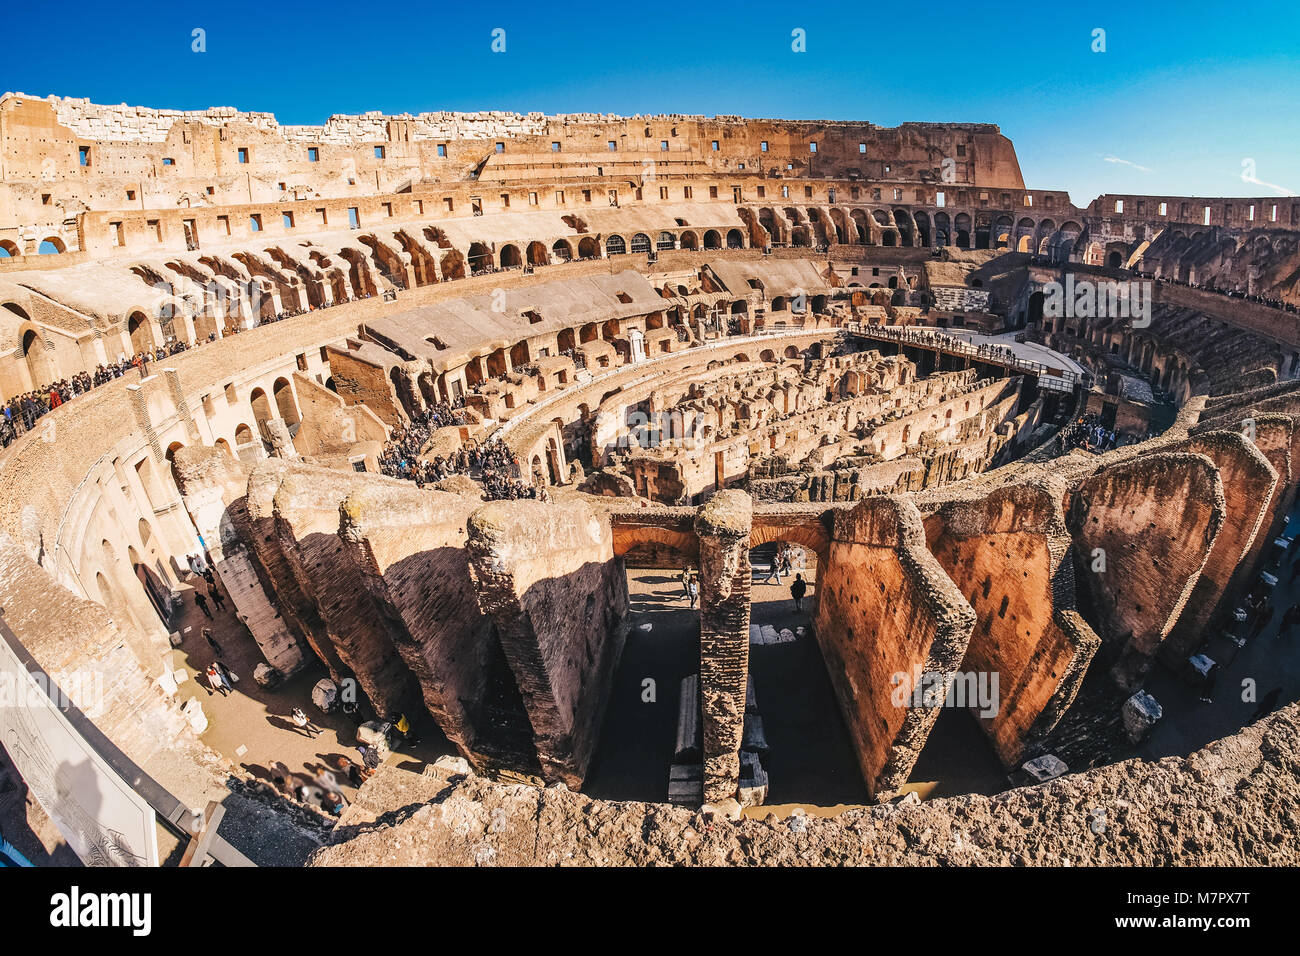 Inside the Roman Colosseum in Rome, Italy panoramic view - Stock Image